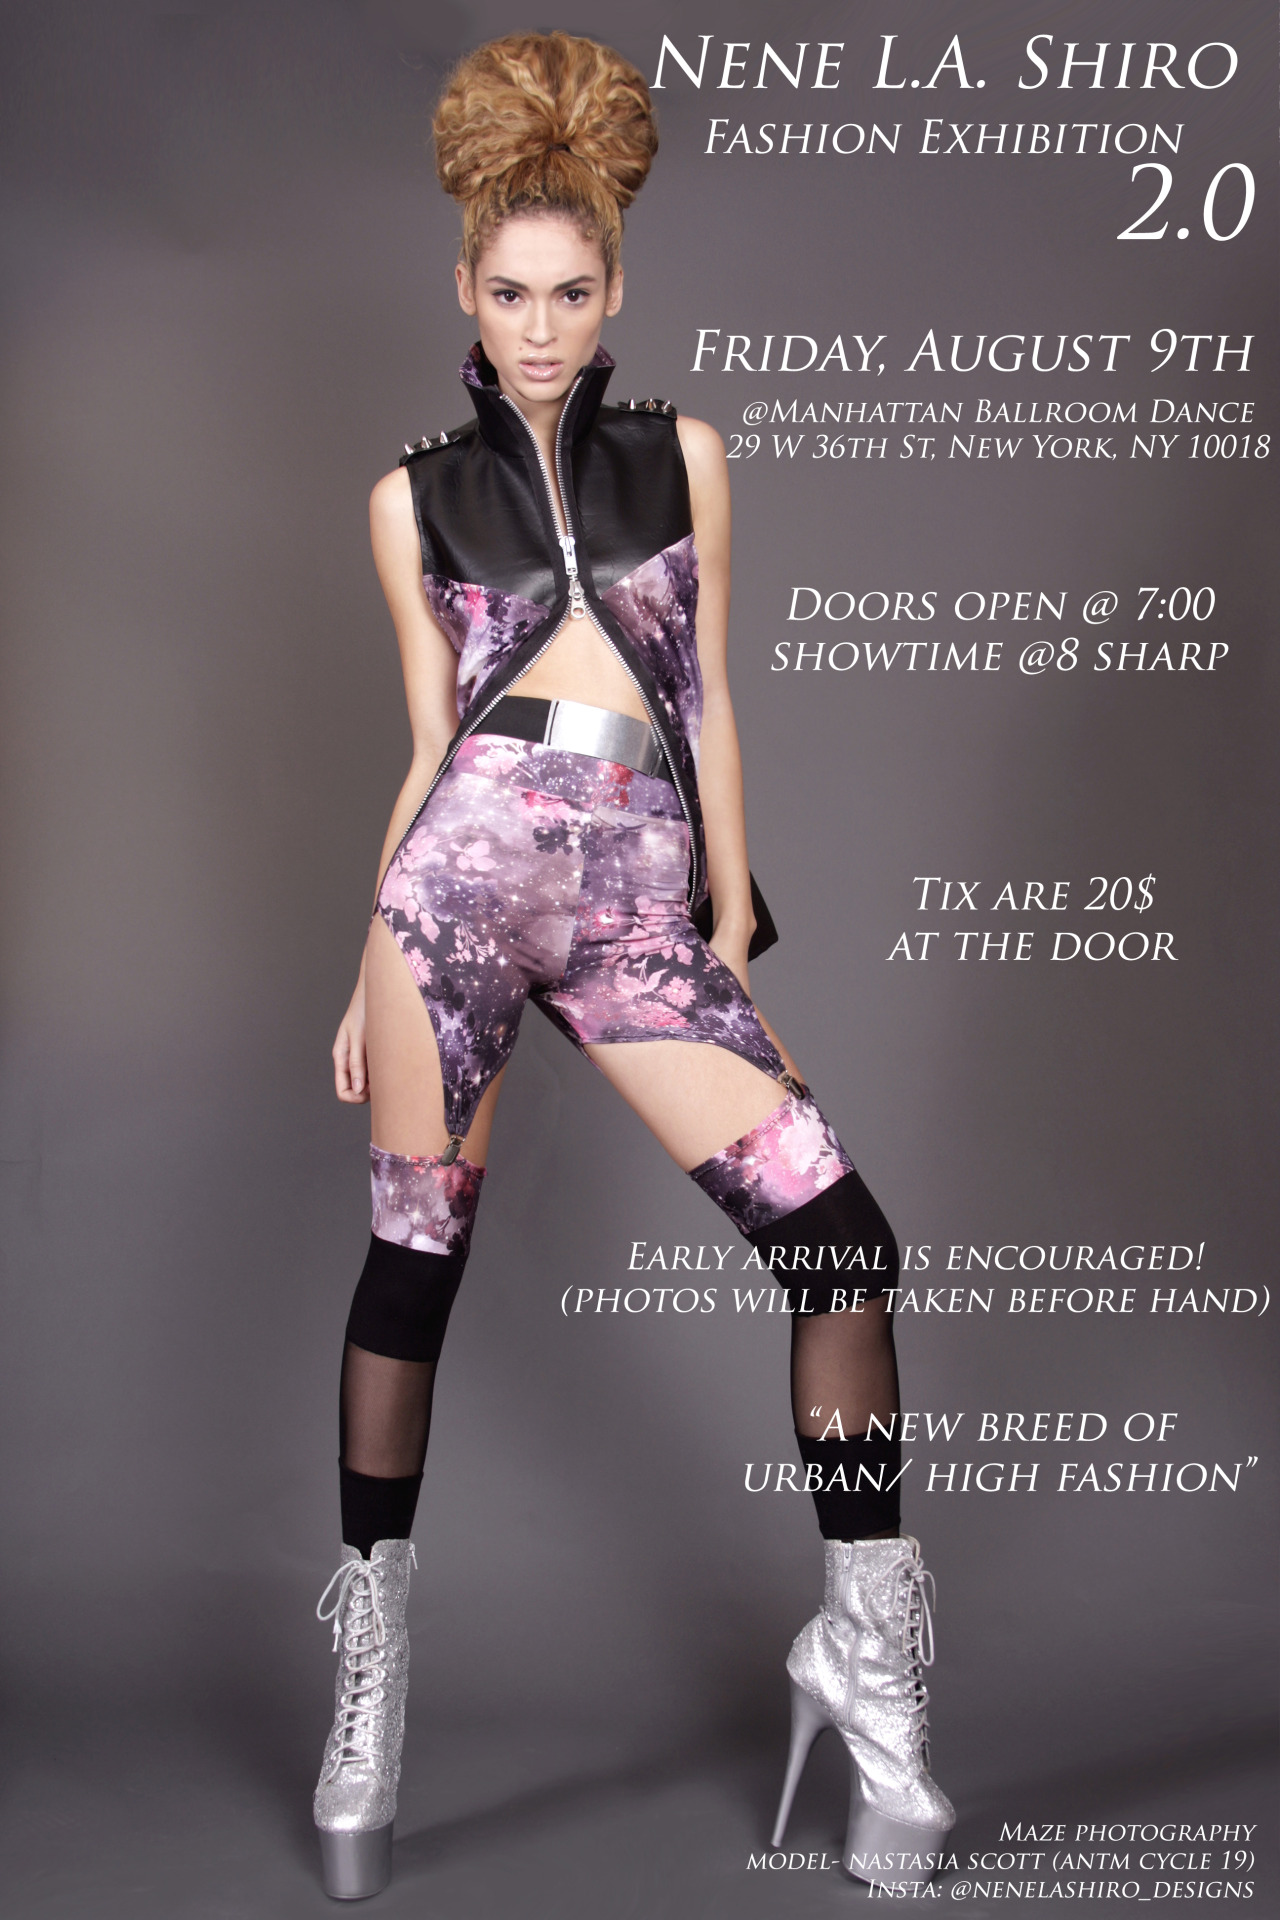 This Friday, NeNe La Shiro hosts their annual fashion exhibition at the Manhattan Dance Room. Tickets $20 at the door. Guess who has two free tickets for you and a guest?  That's right. How to win you ask? Simply Like BlackFashion on Facebook and let us know your favorite album of 2013 so far. No Facebook, don't sweat it; Follow & Tweet us your favorite album of 2013 so far. Or you can simply leave a comment with your your favorite album of 2013 so far in our disquis box below. MAKE SURE YOUR ASK BOX IS OPEN. Two winners will be announced this Wednesday at 7:00pm enough time to get your outfits together.